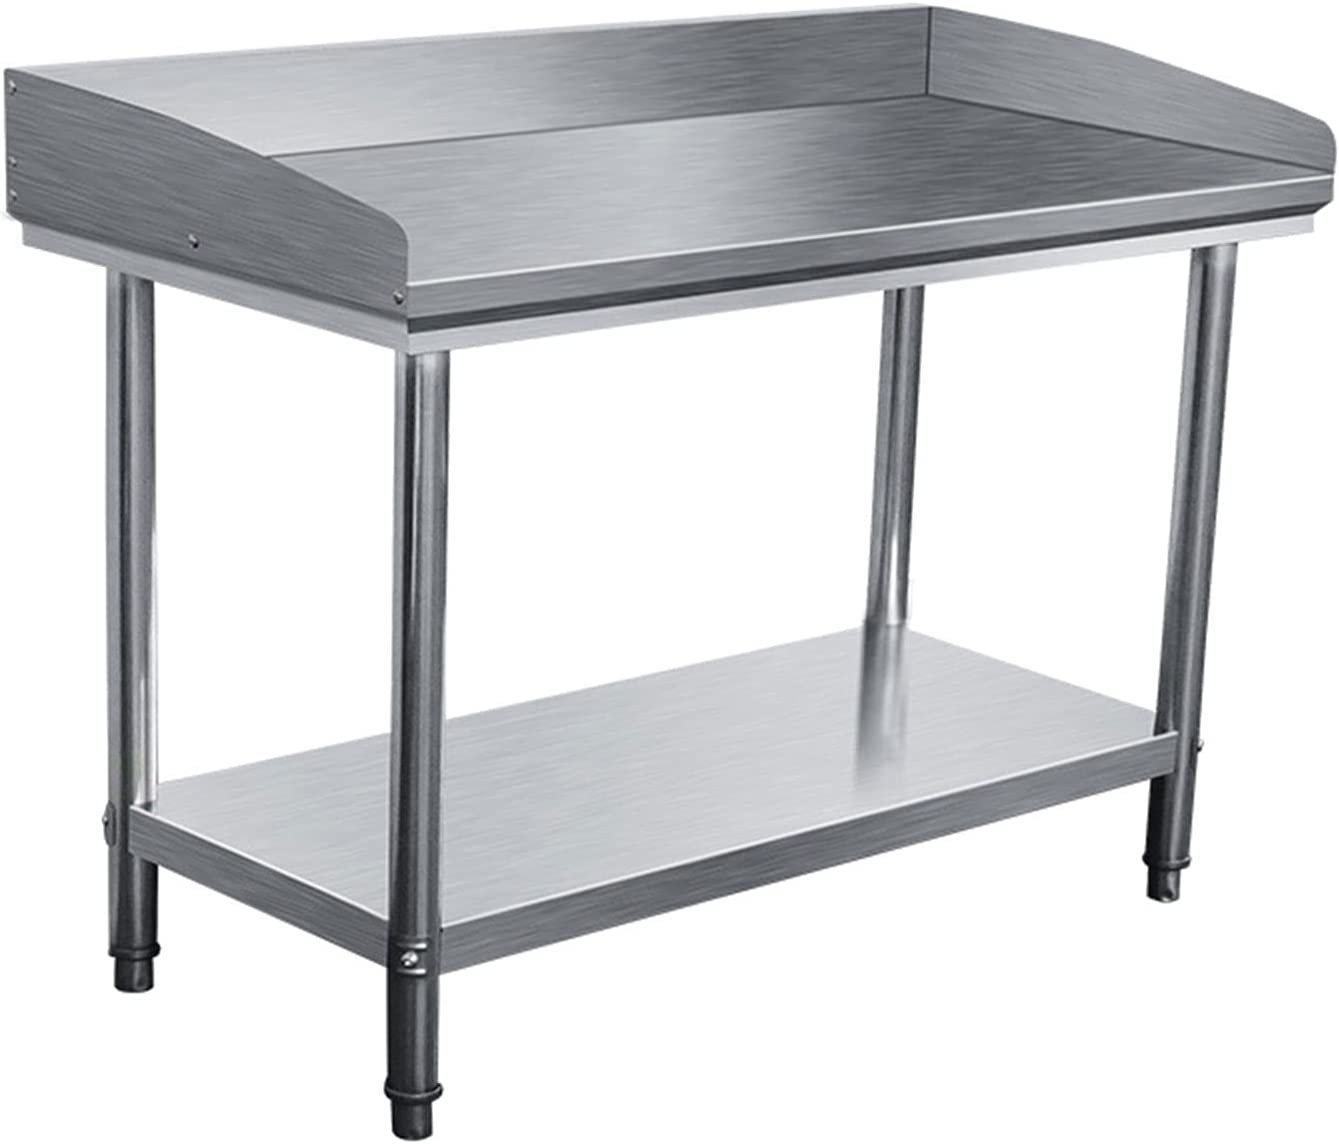 DUTUI Stainless Steel Table for Preparation and Work, Commercial Heavy-Duty Table with Base Frame for Restaurants Homes and Hotels